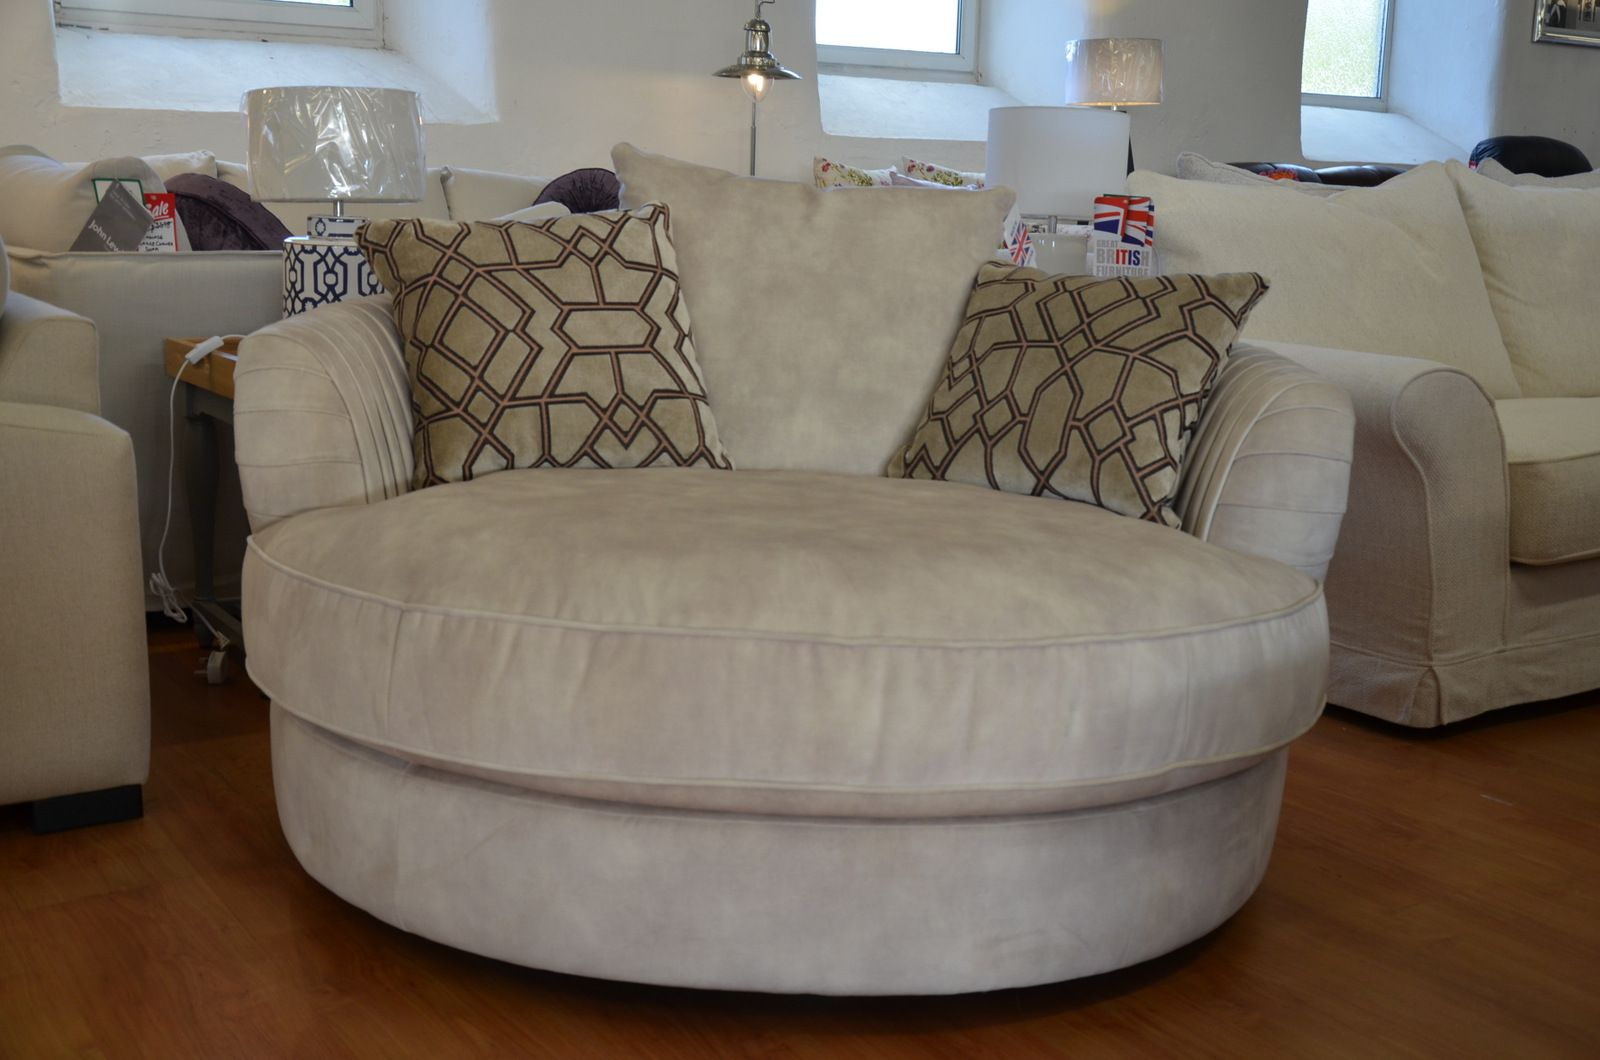 Prototype Large Round Swivel Chair Snuggler